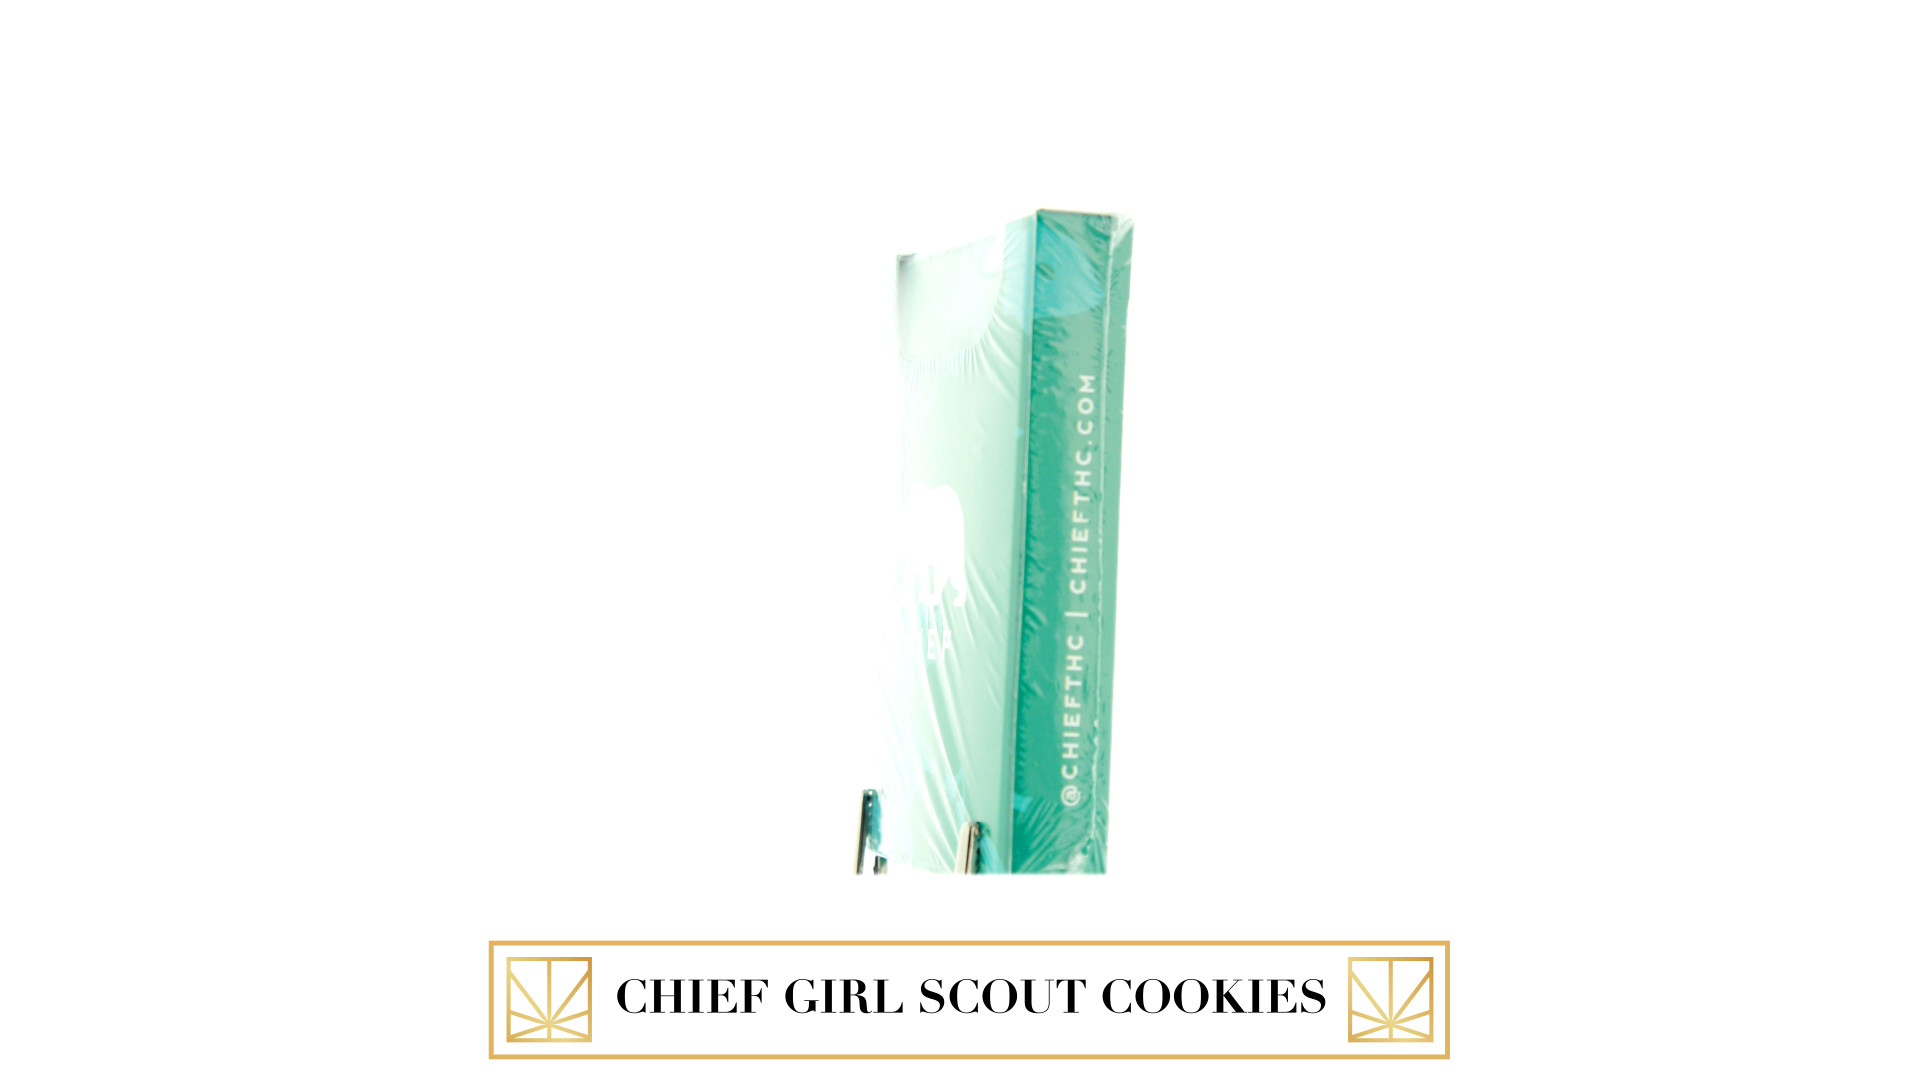 Chief - Girl Scout Cookies